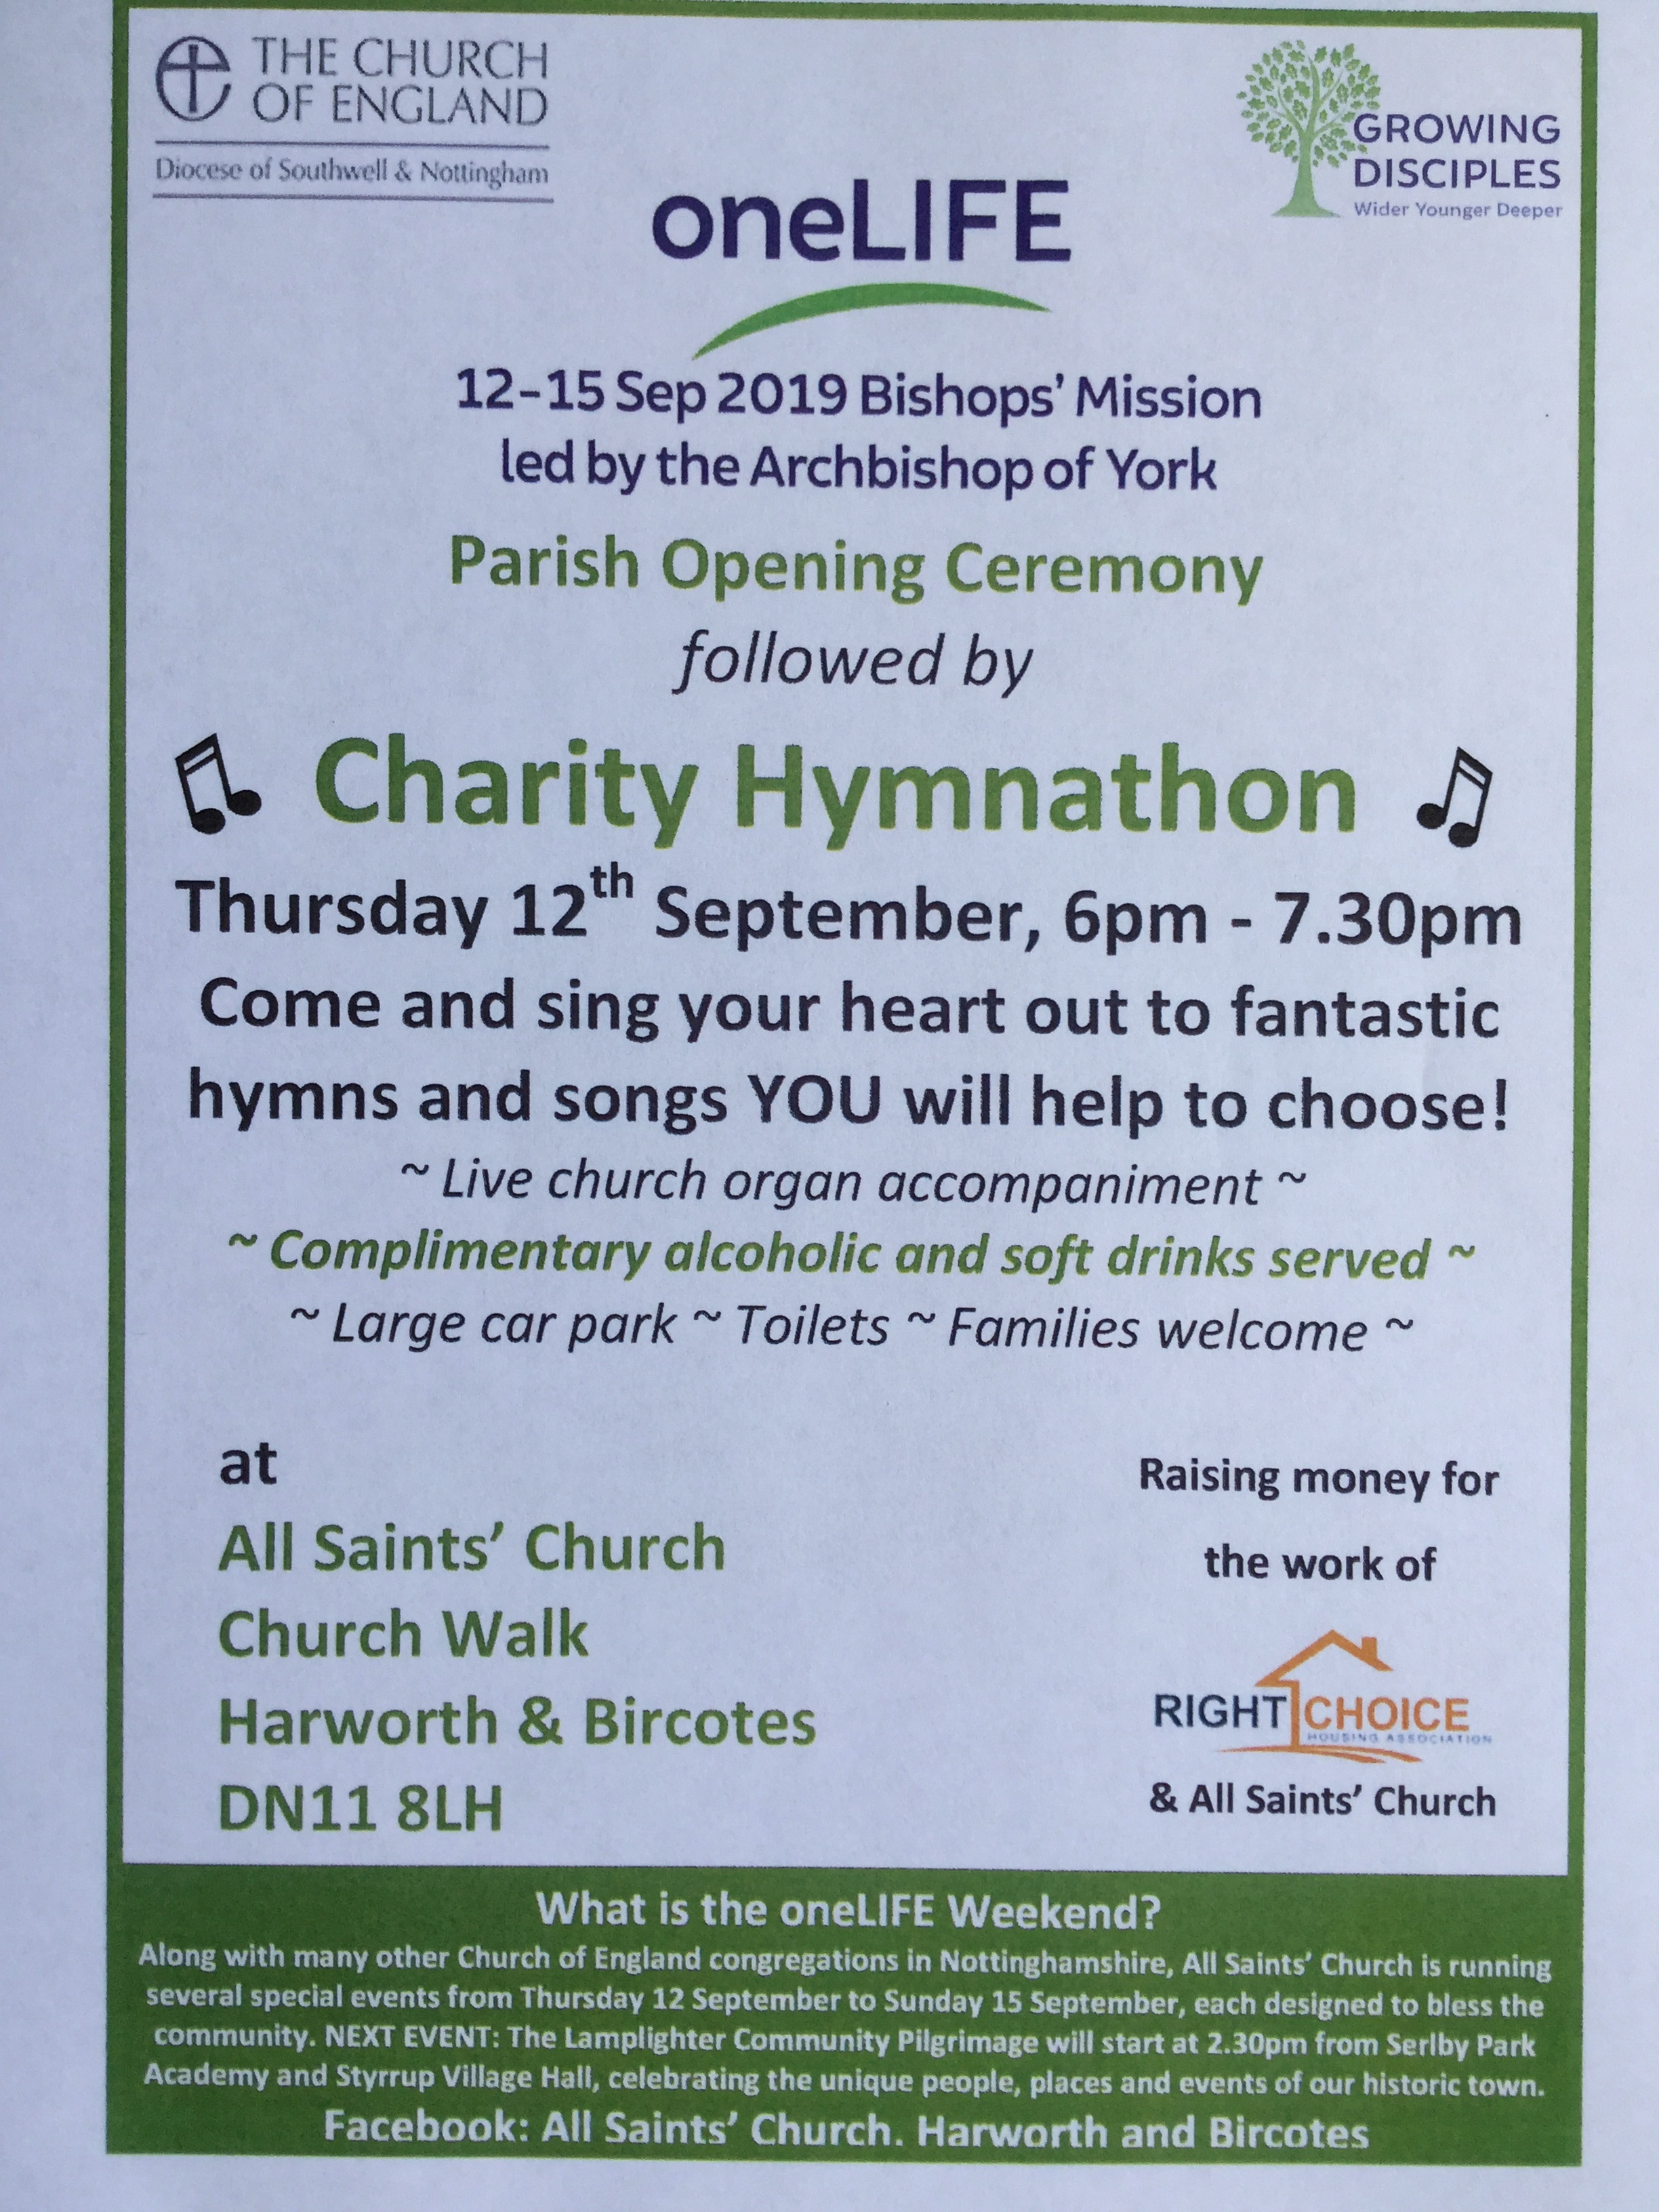 Charity Hymnathon - a oneLIFE Weekend event event.